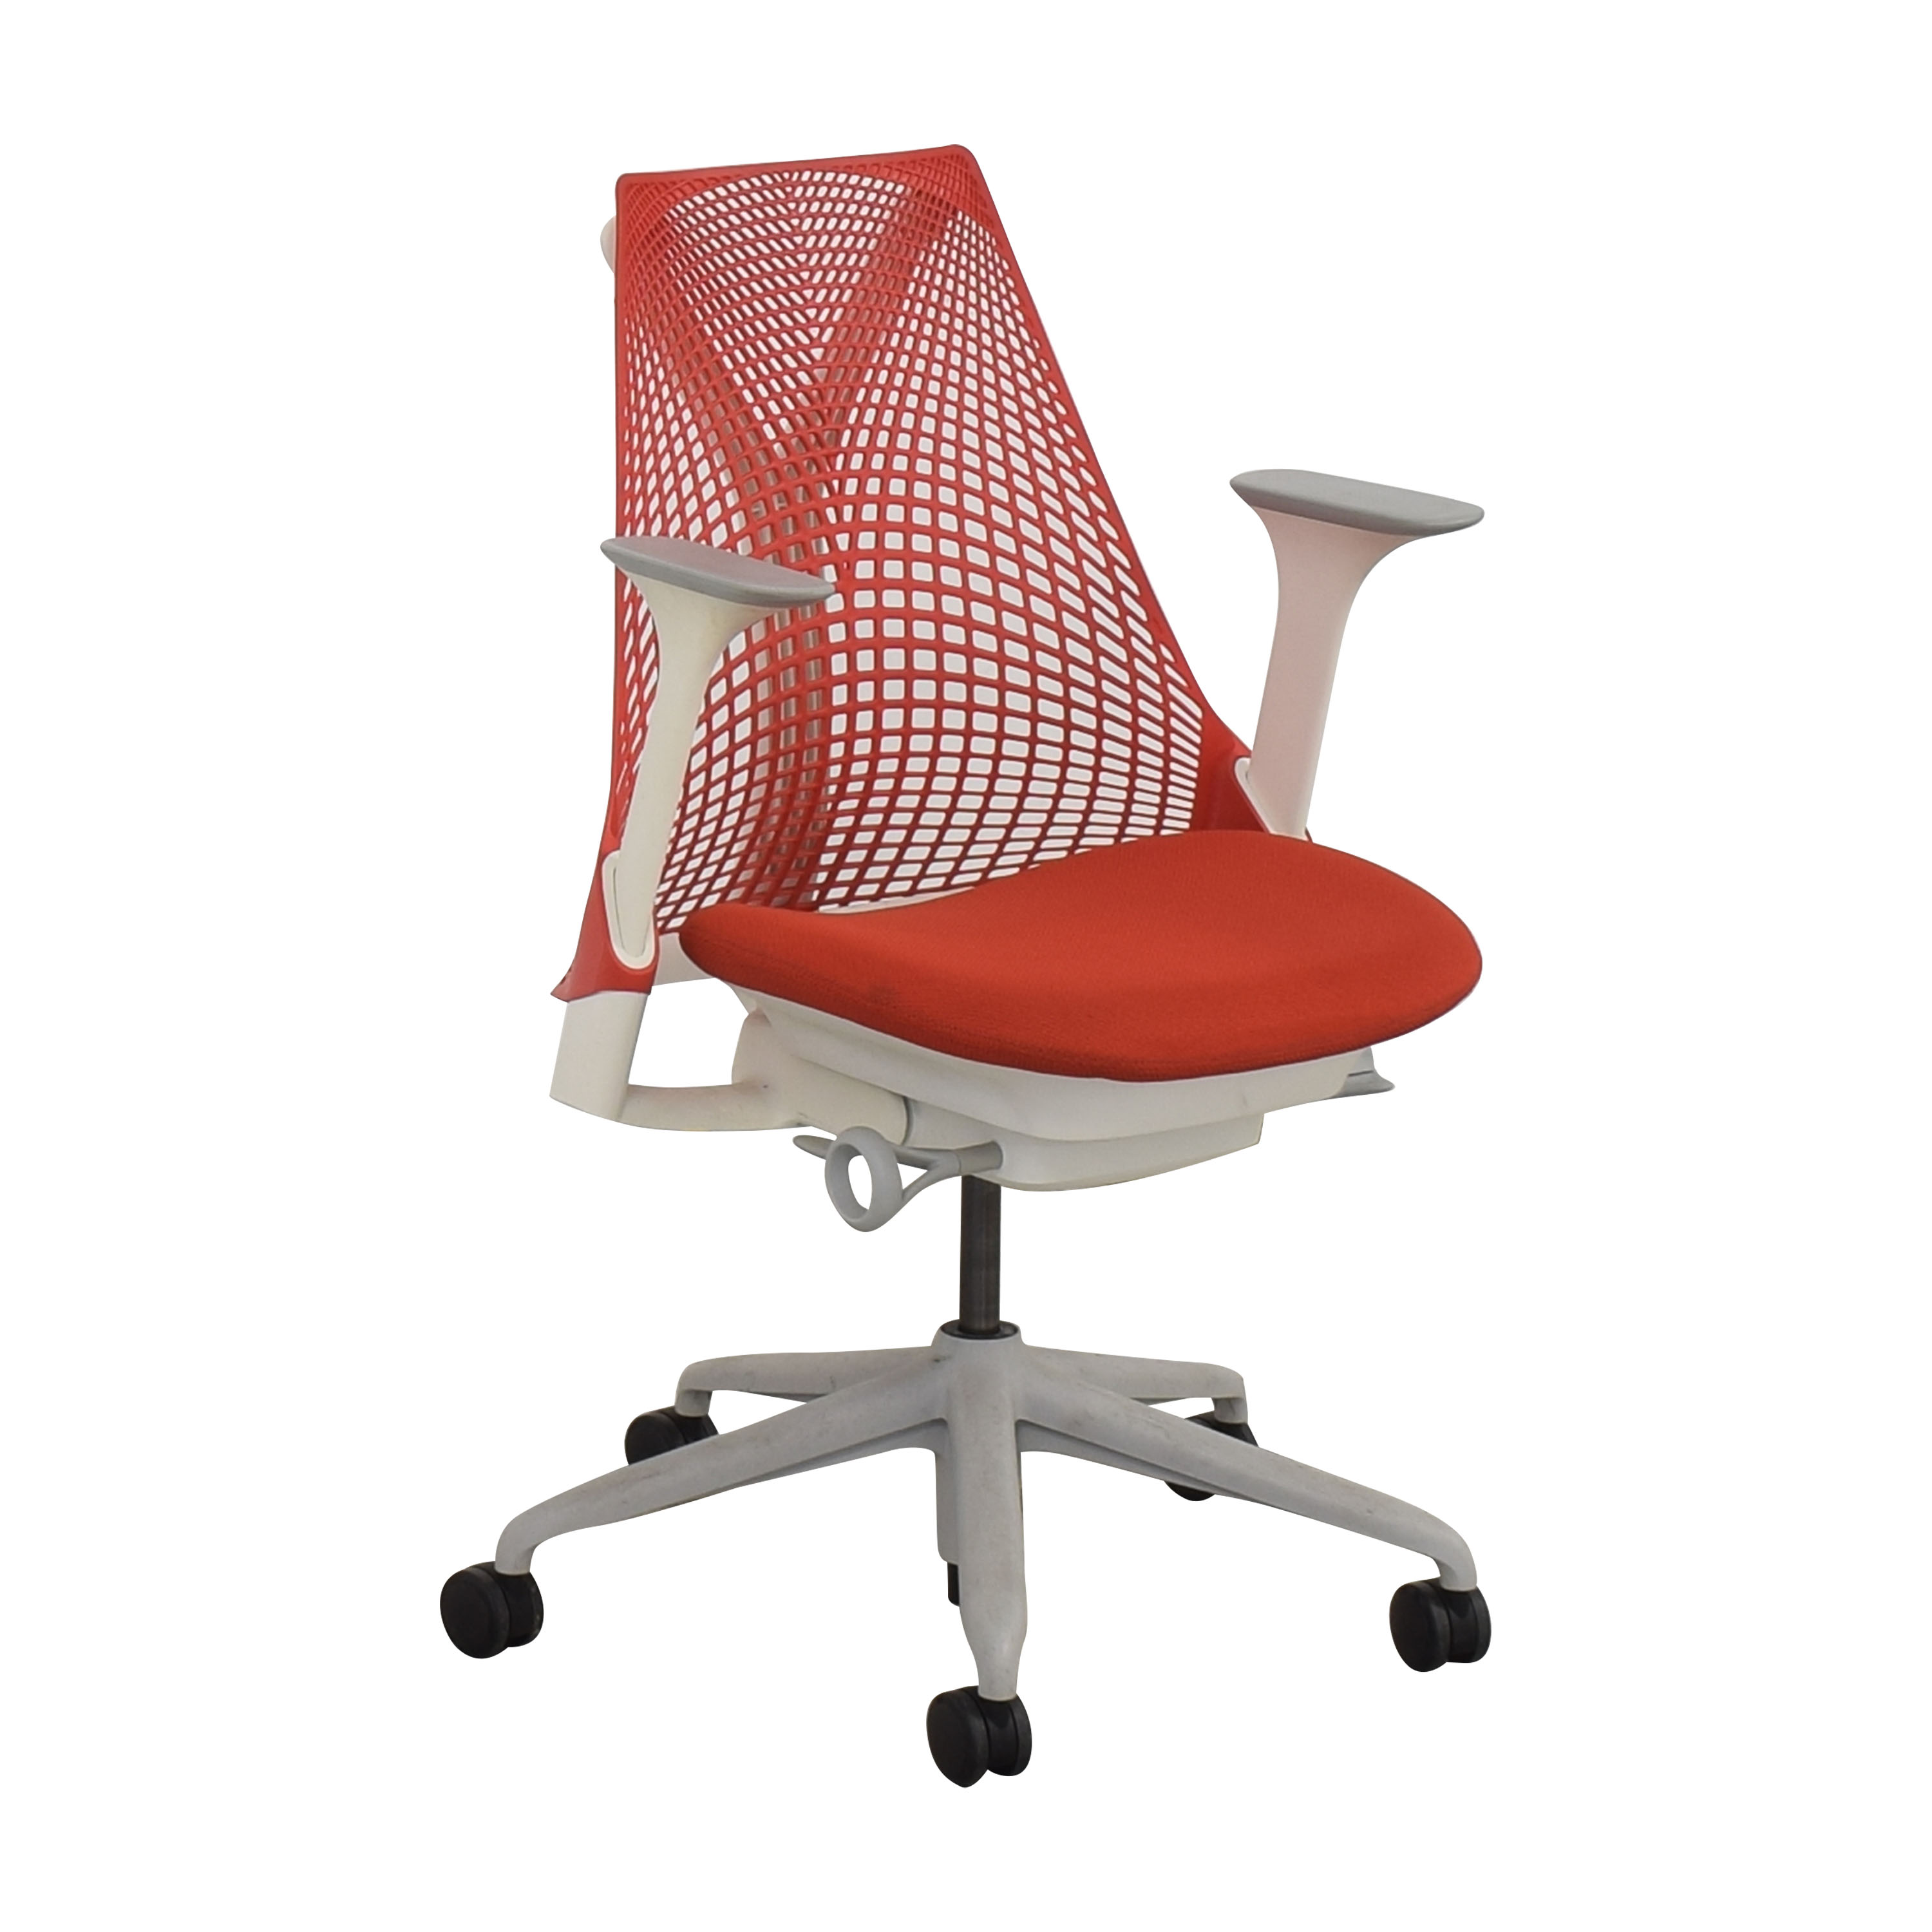 Herman Miller Herman Miller Sayl Chair Chairs